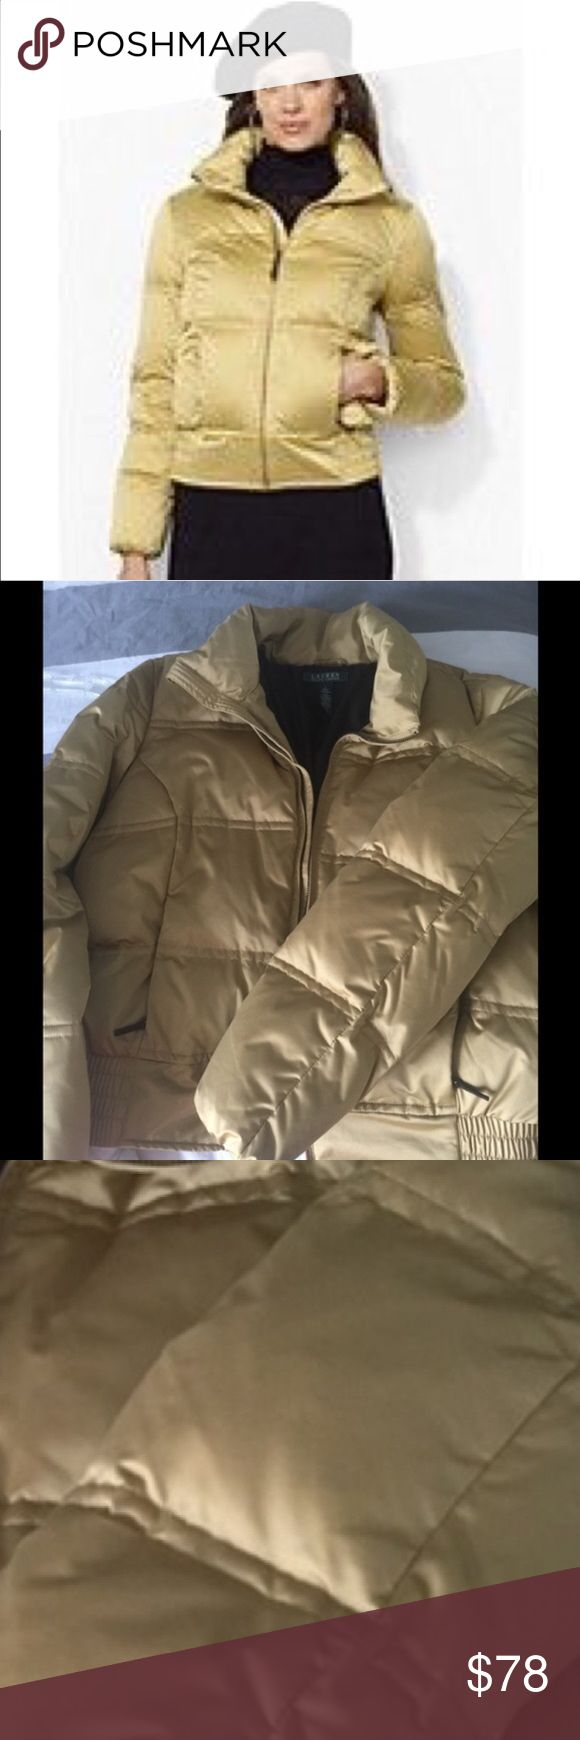 RALPH LAUREN Down Bomber Jacket NWOT This jacket is super warm and new with out tags. Gorgeous gold with elastic on the band of the waist/hip. Two exterior zippered pockets. Ralph Lauren Jackets & Coats Puffers